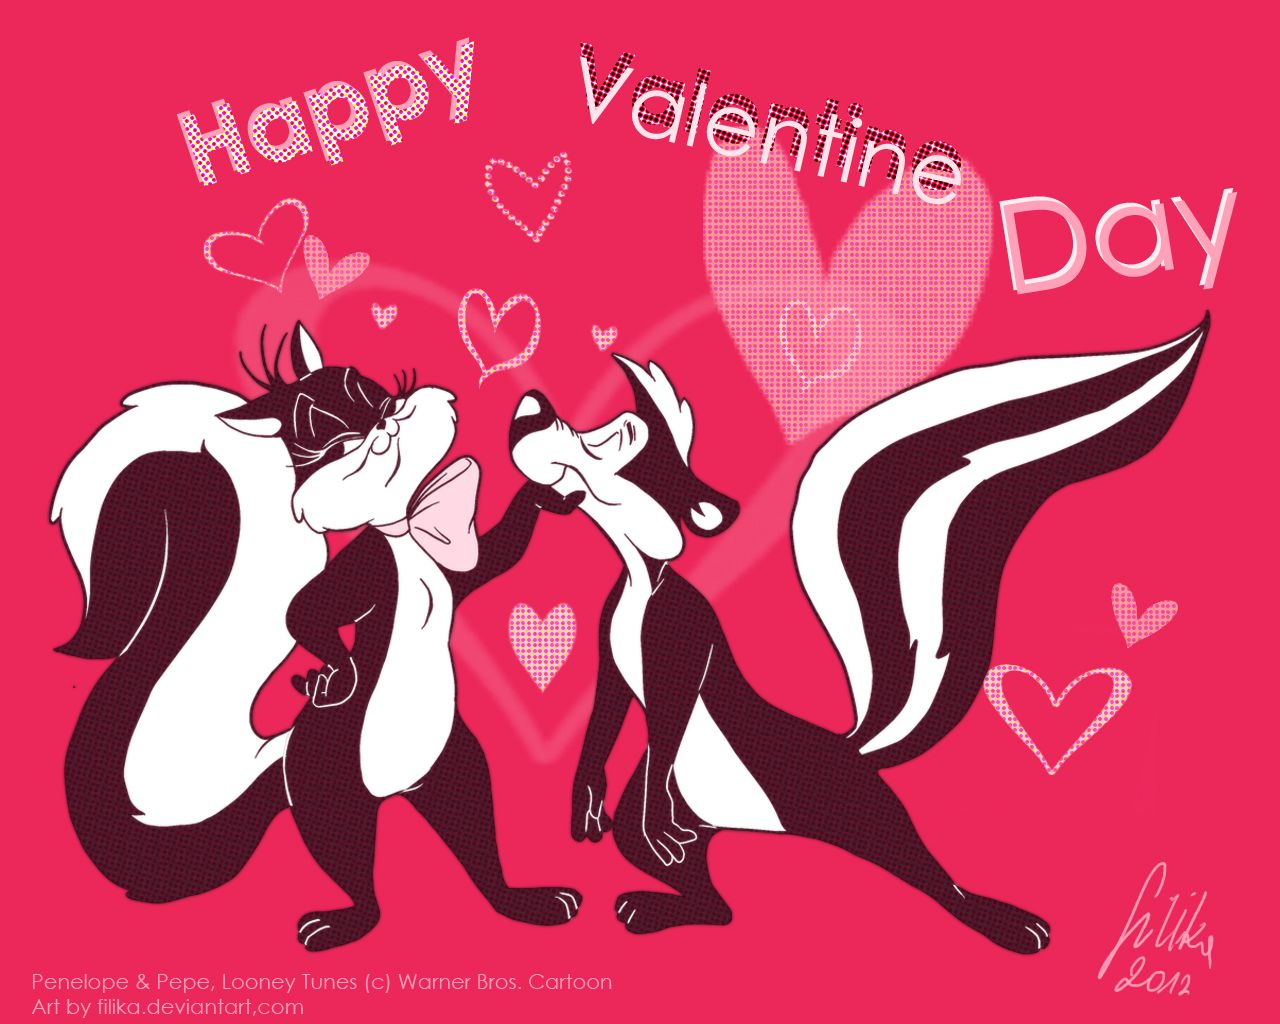 162 best pepe le pew images on pinterest | pepe le pew, looney